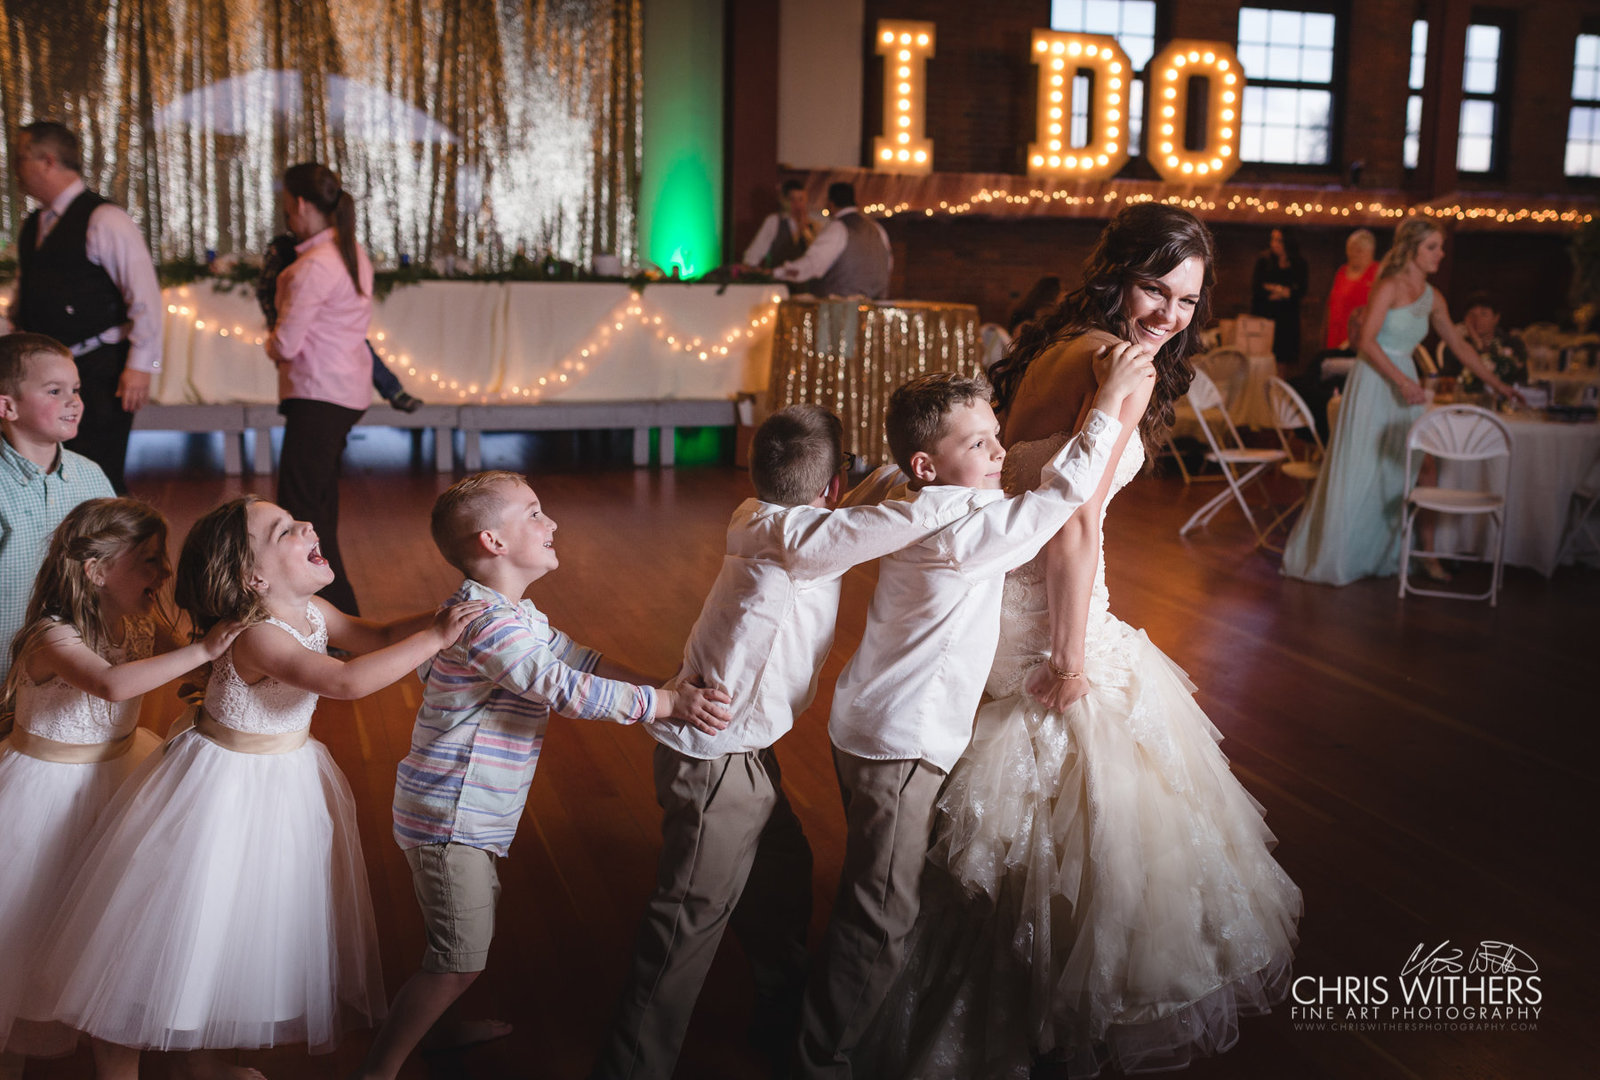 Springfield Illinois Wedding Photographer - Chris Withers Photography (115 of 159)